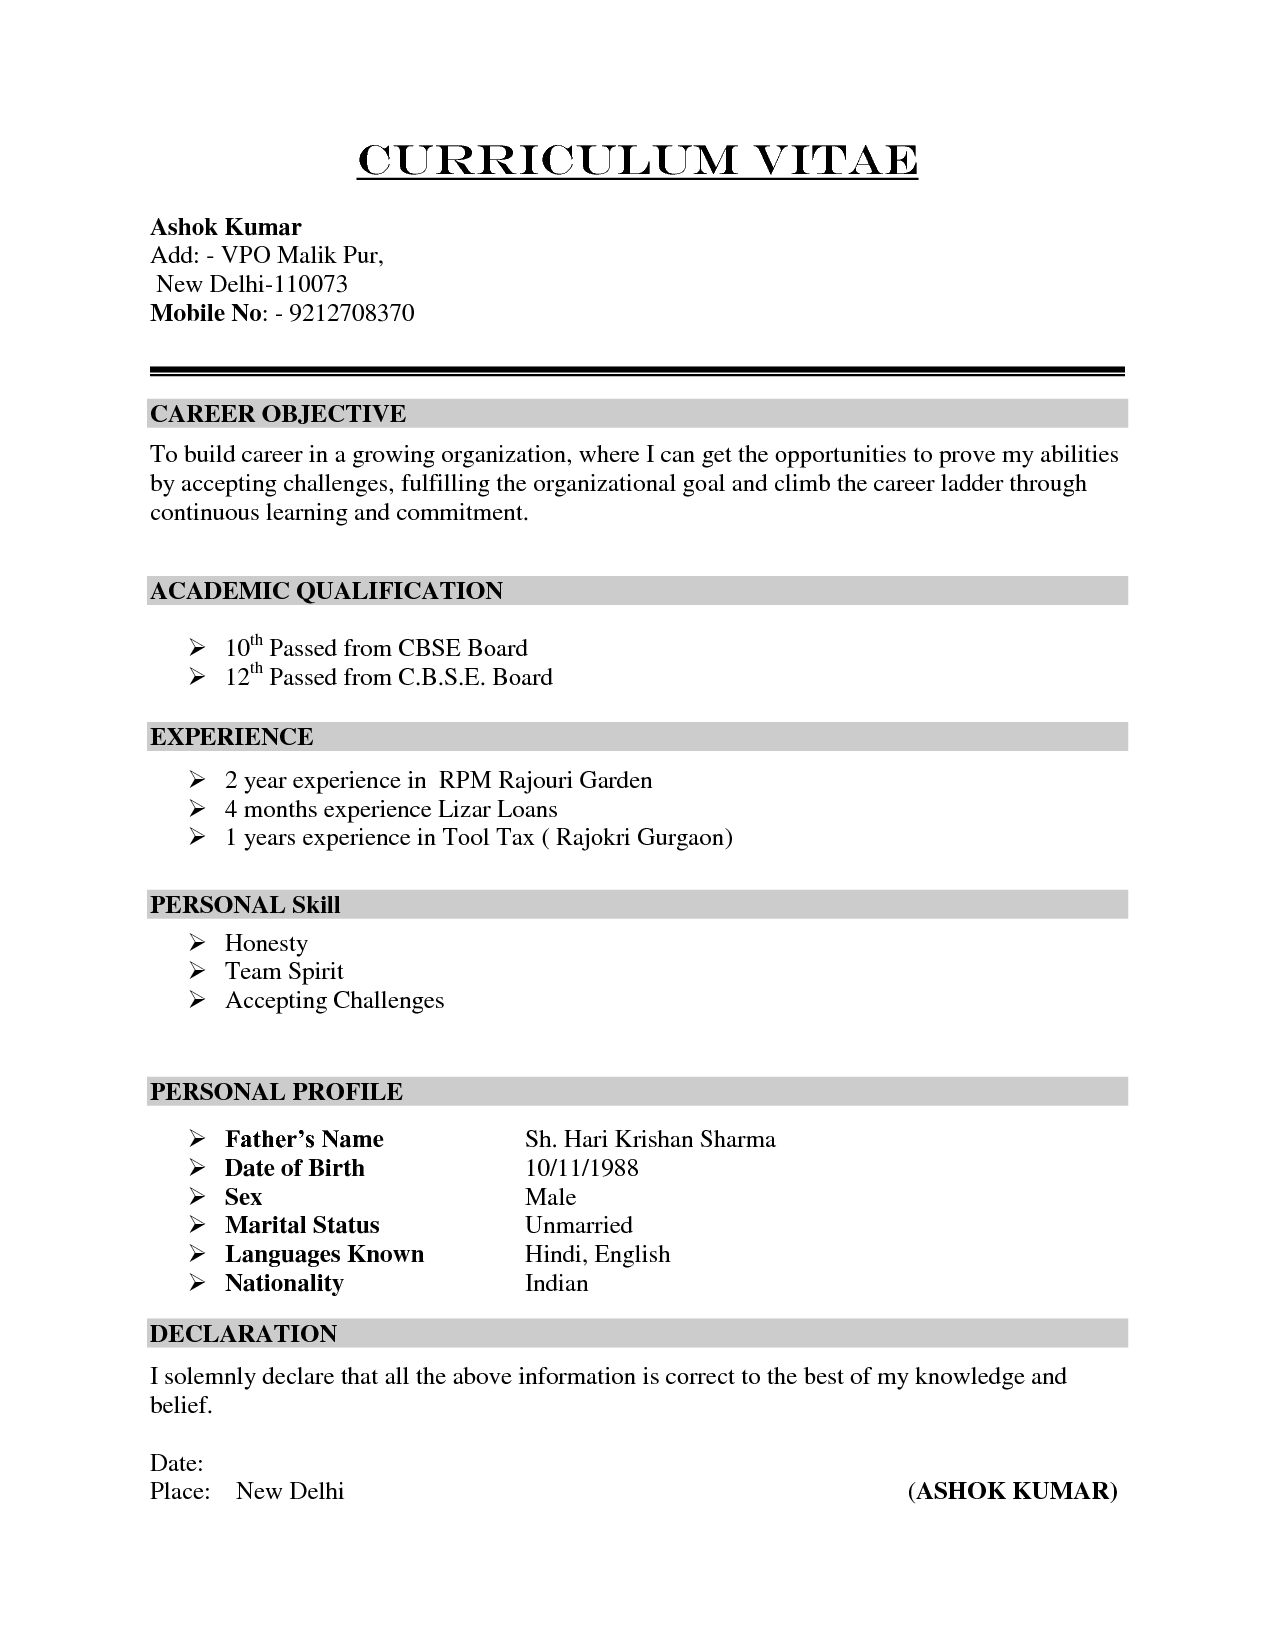 cv format resume samples - Templates